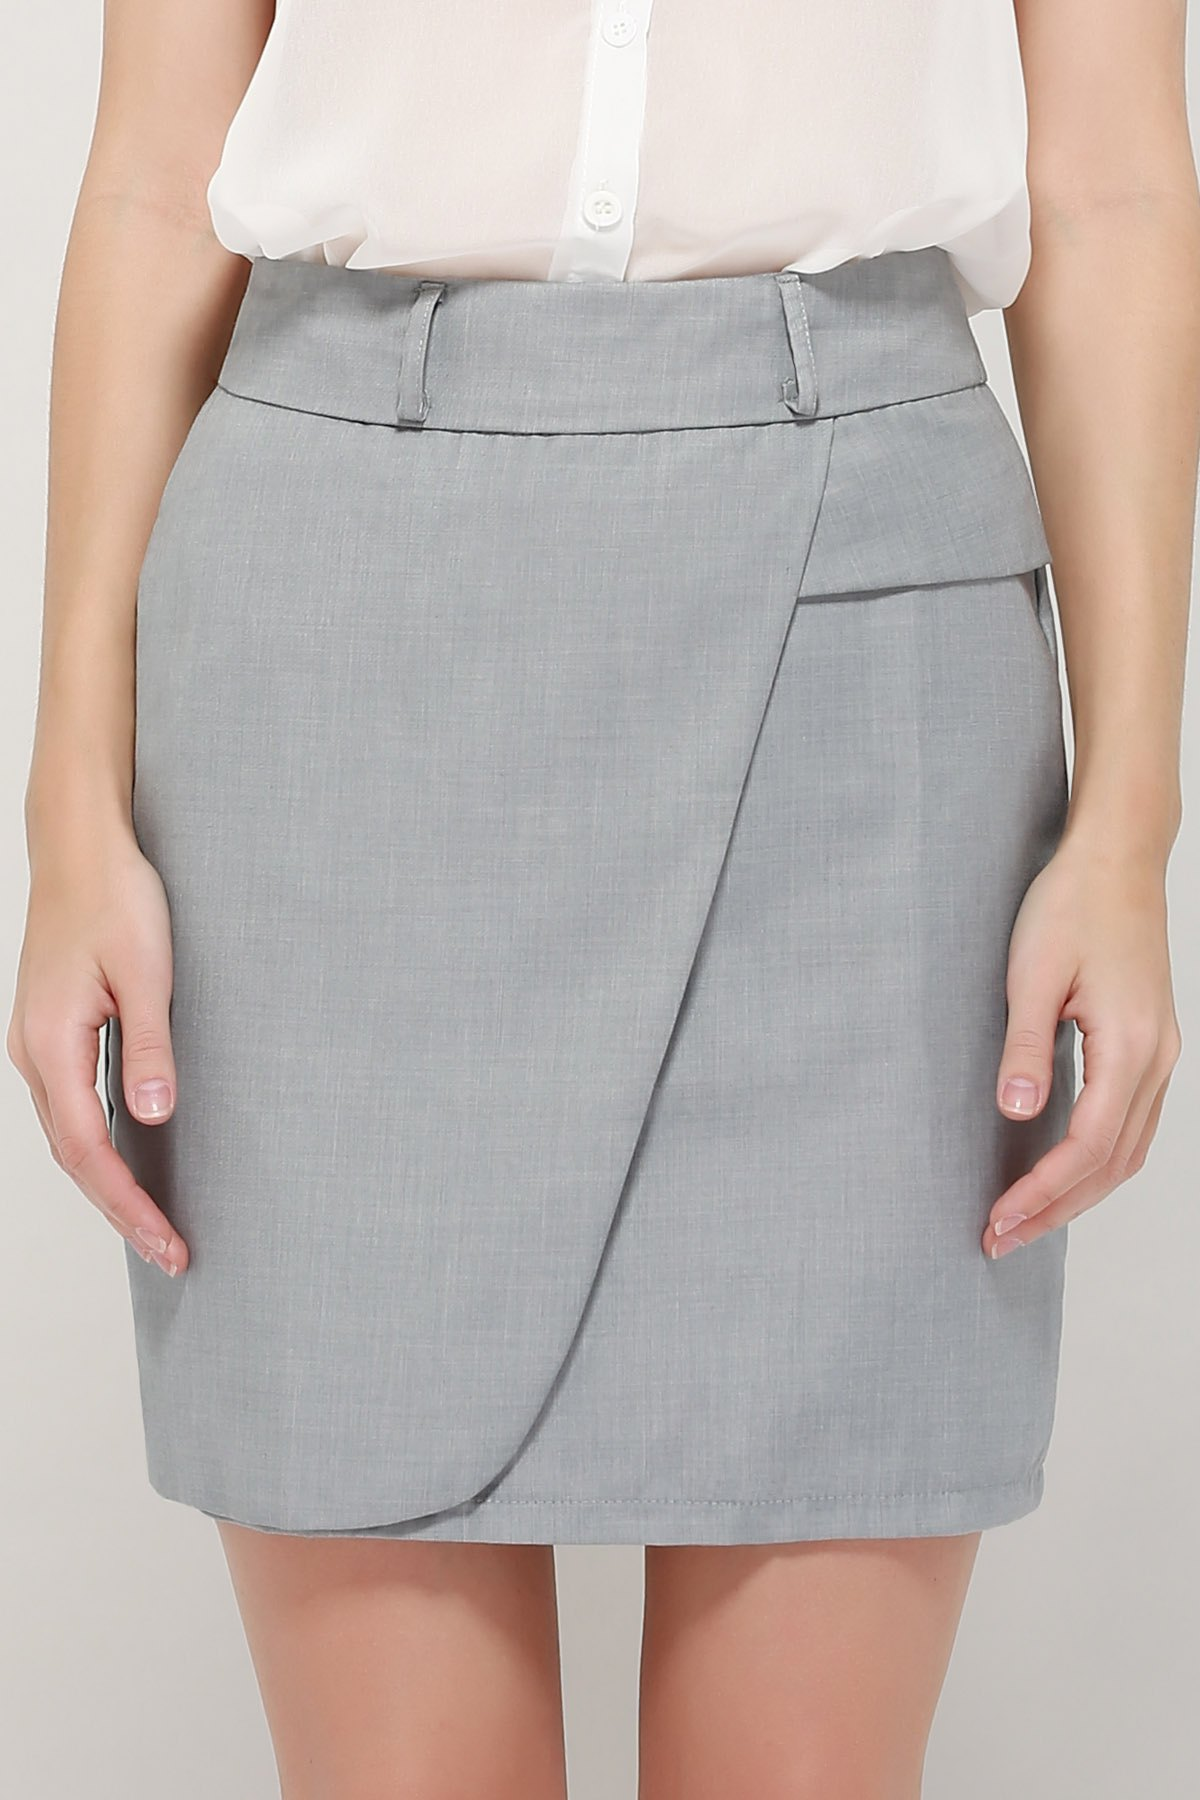 Graceful OL Style Women's Pencil Skirt(With Belt) от Dresslily.com INT